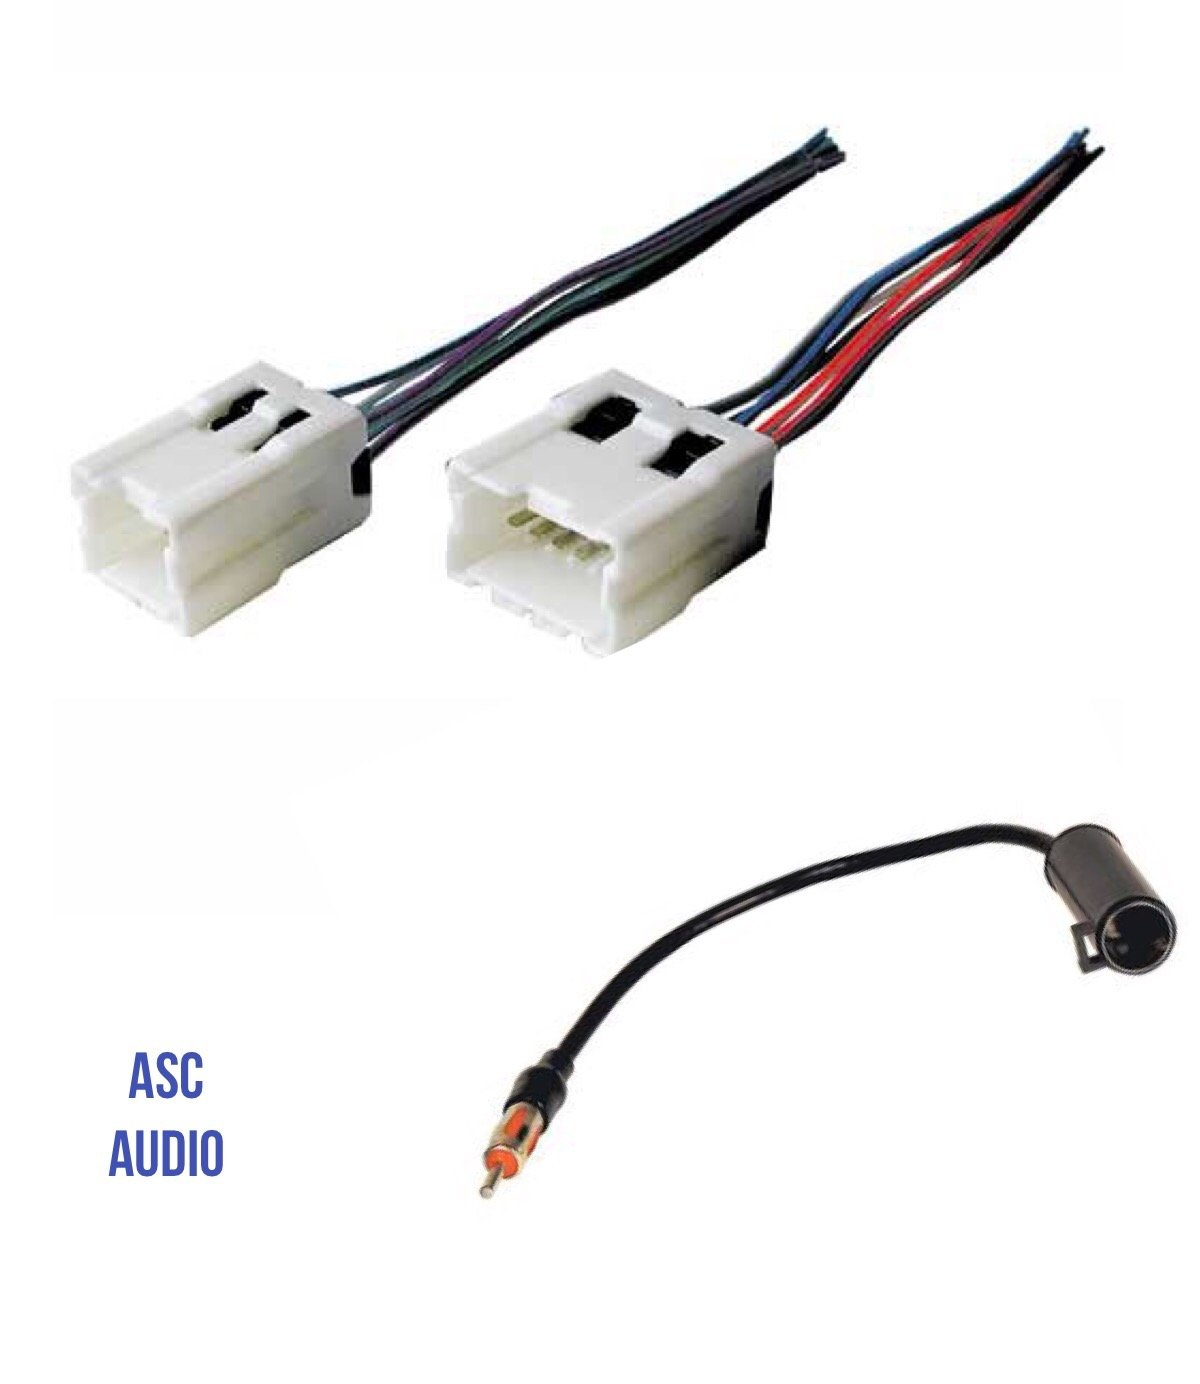 ASC Audio Car Stereo Radio Wire Harness and Antenna Adapter to Aftermarket Radio for some Infiniti Nissan etc.- Vehicles listed below